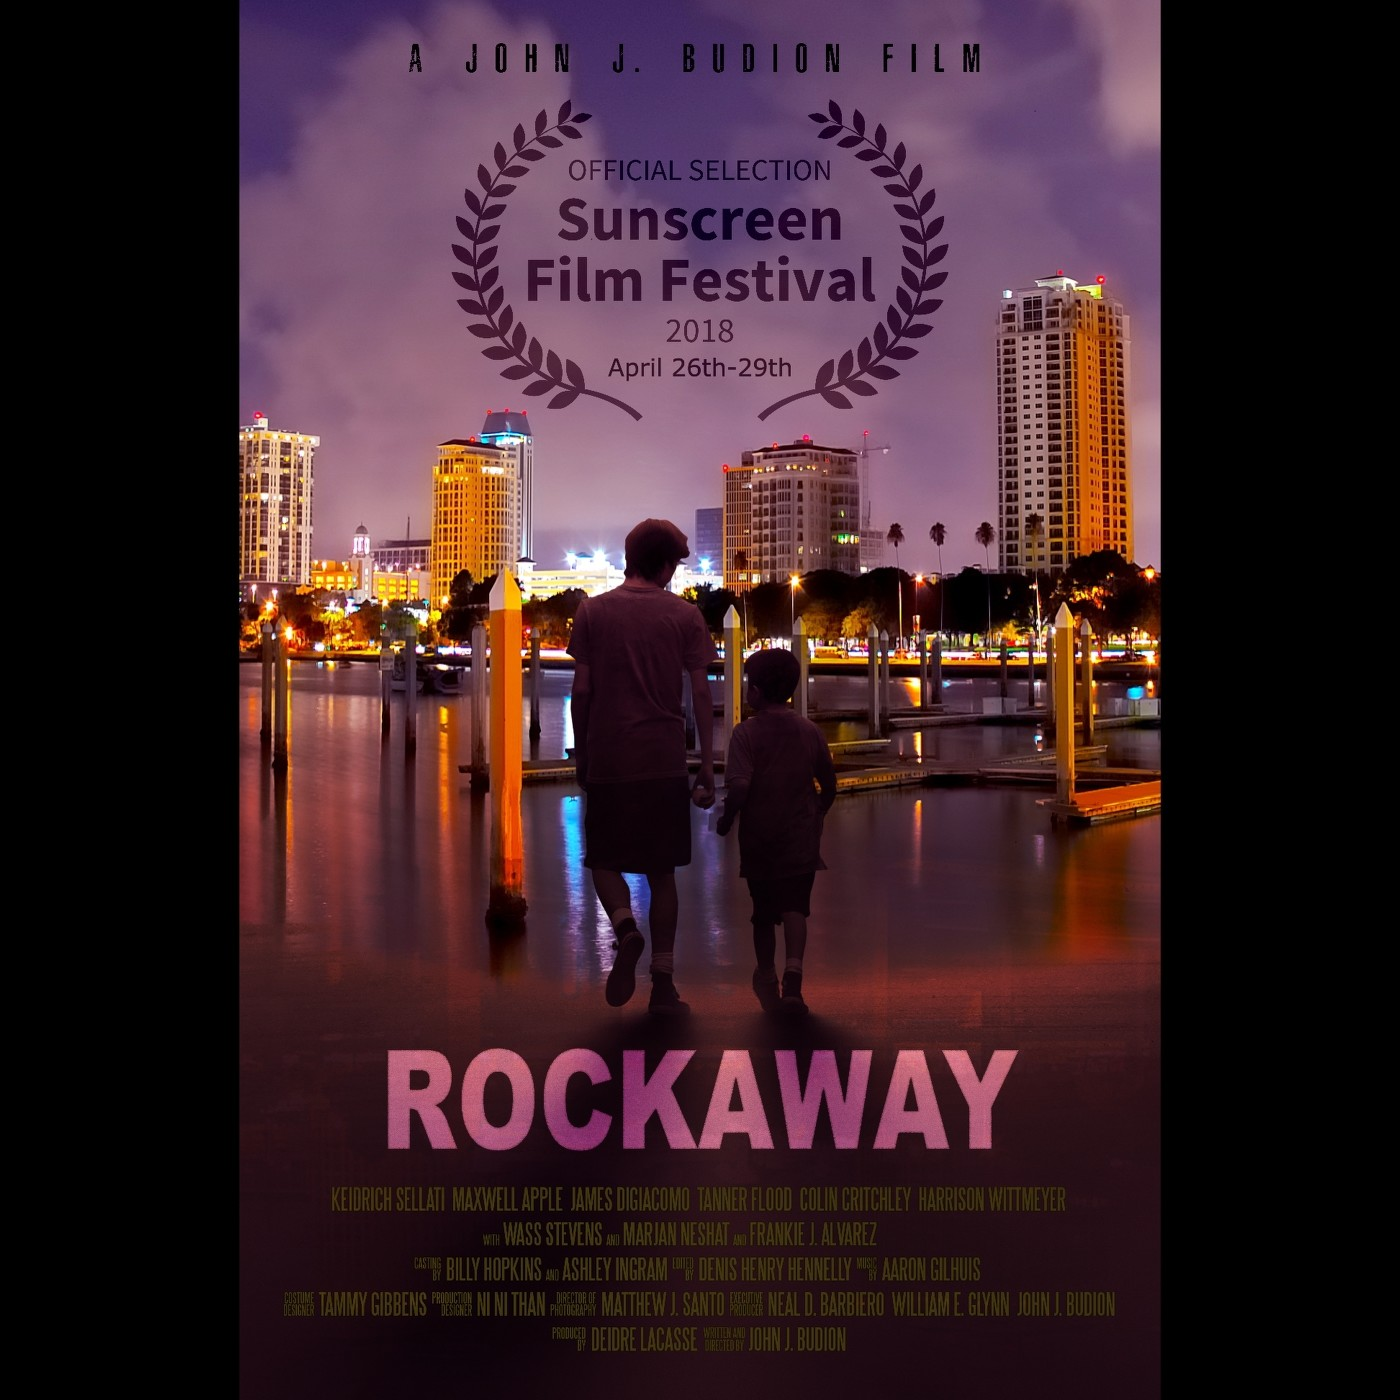 """Rockaway"" will make its Florida premiere at the Sunscreen Film Festival on April 28 at 4 p.m. It has already garnered a lot of buzz after success at other festivals."